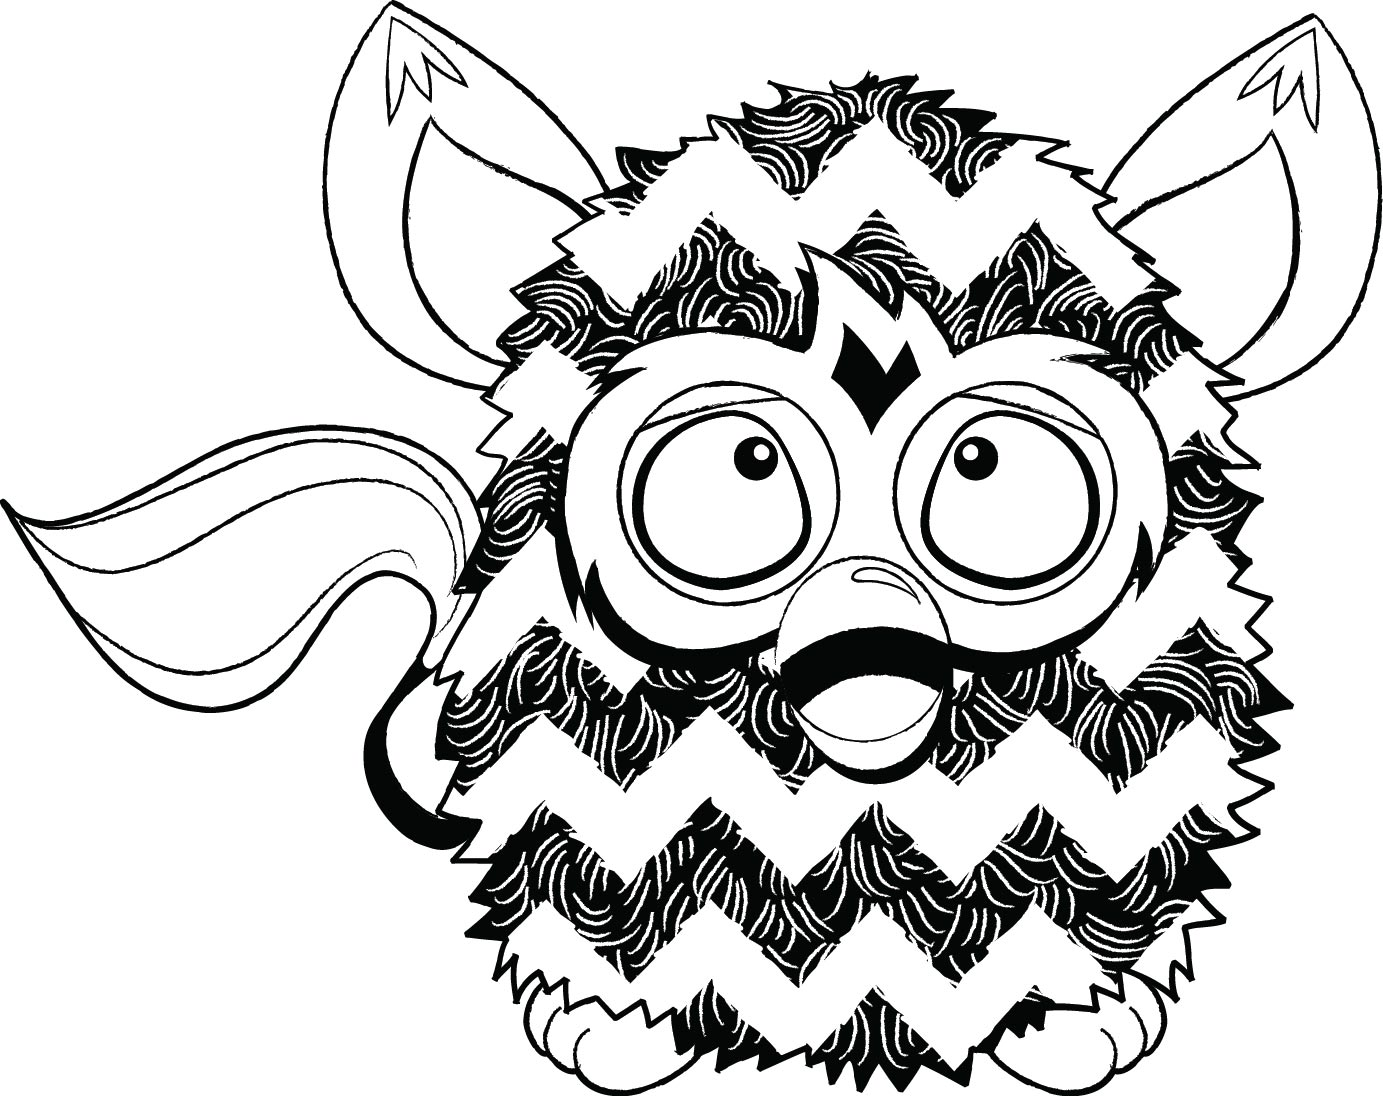 Furby Coloring Pages To Download And Print For Free